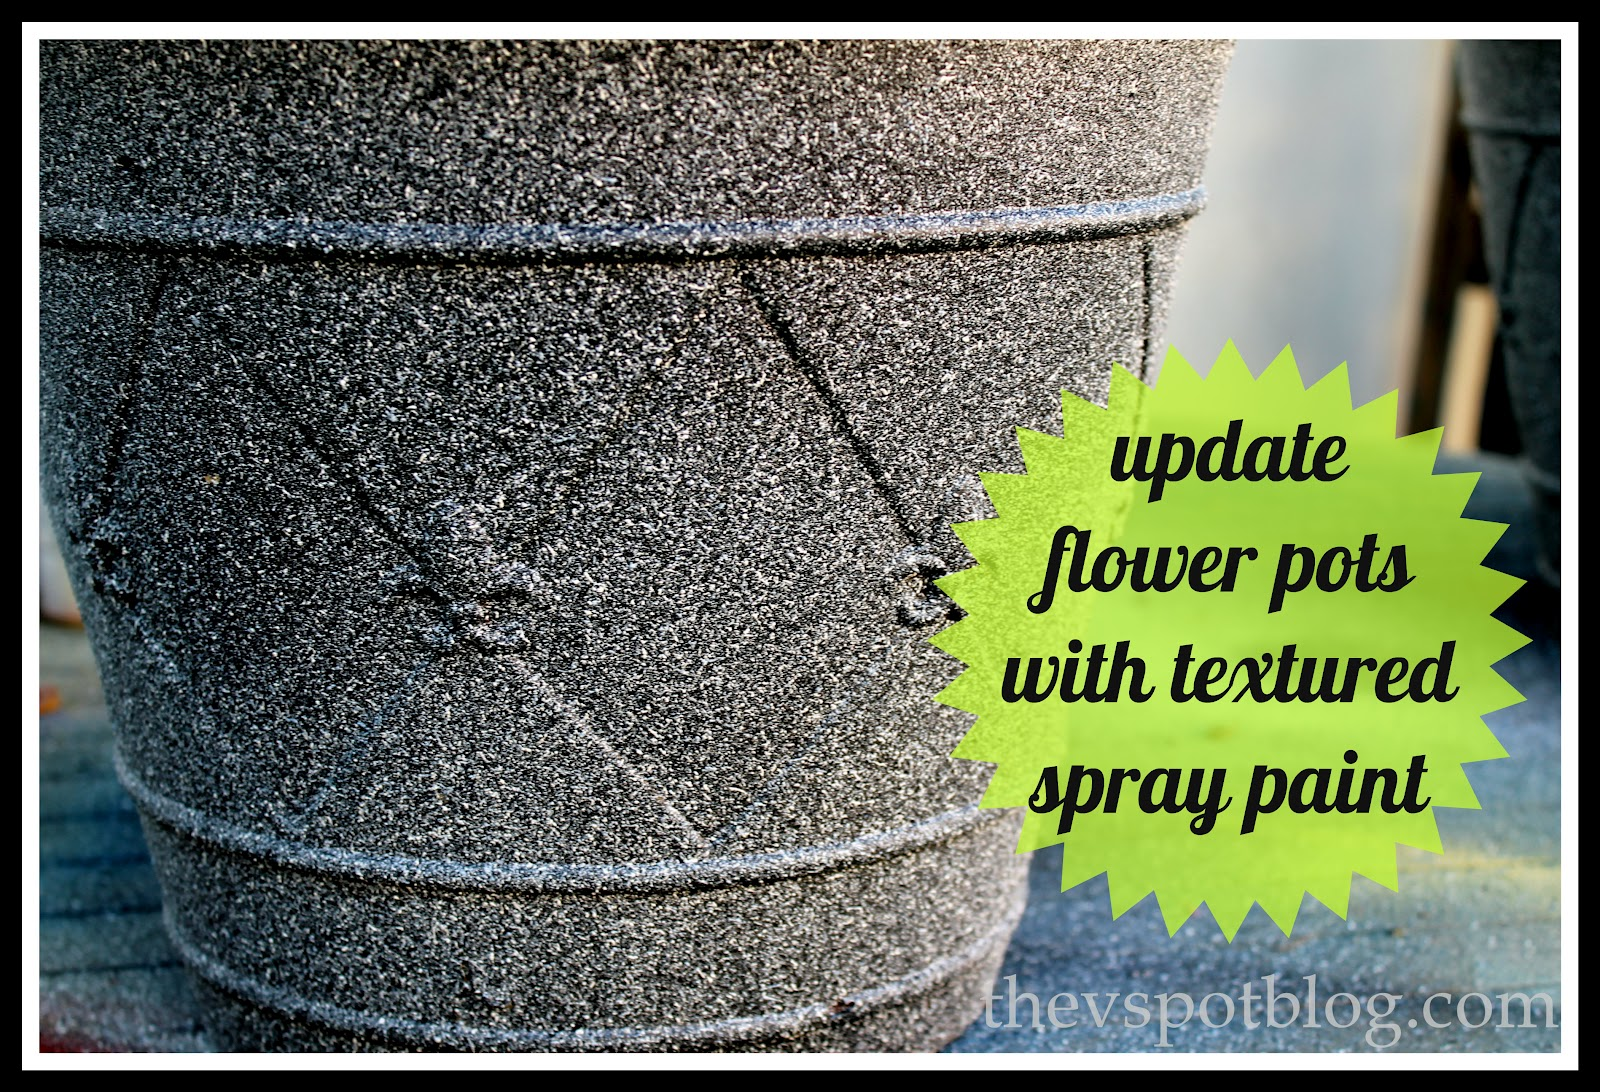 Saving Tired Old Flower Pots With Textured Spray Paint